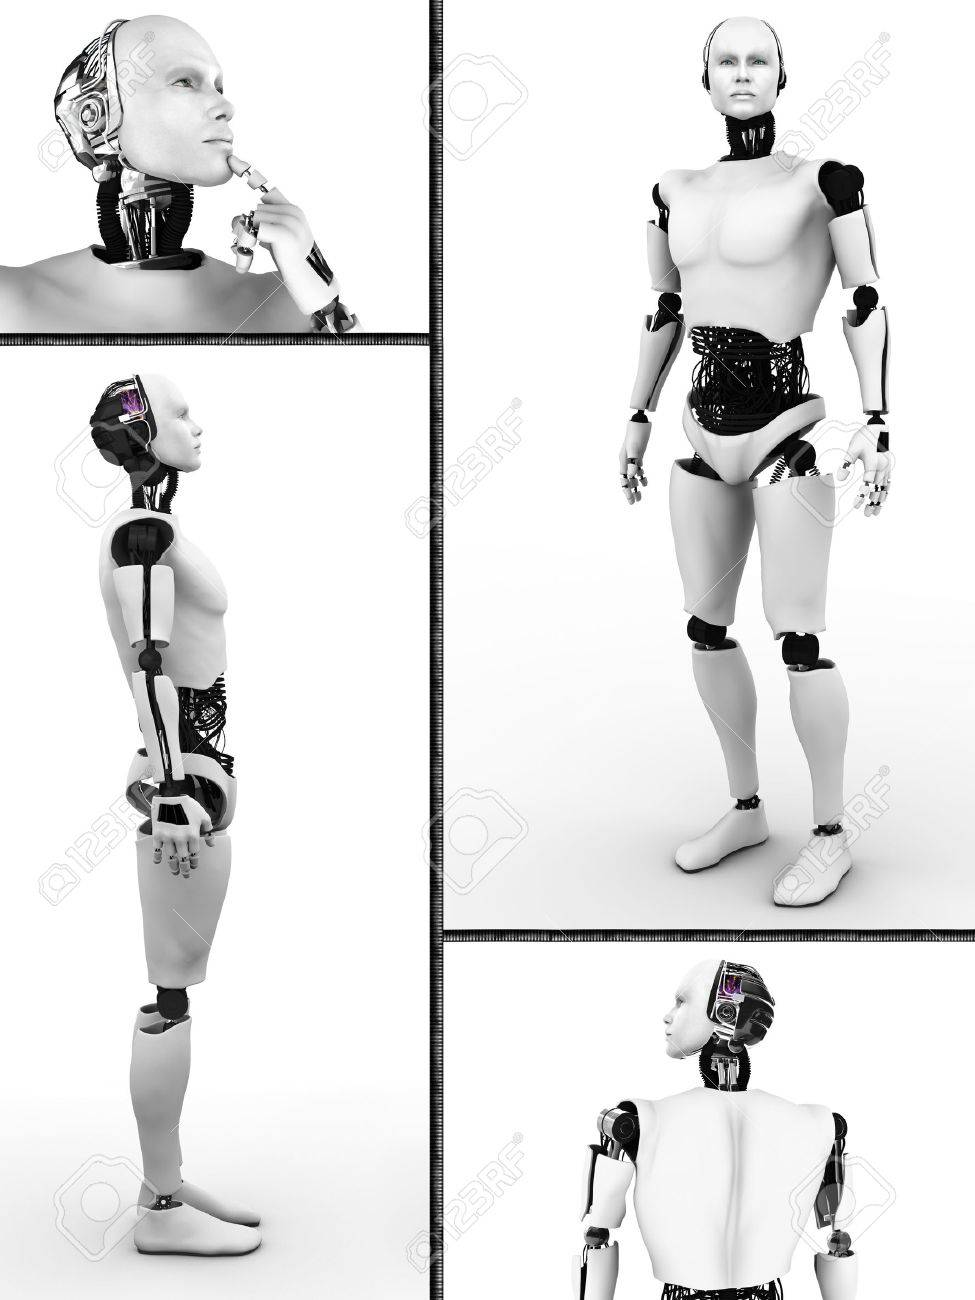 Collage with a male robot  Four different views of the robot  White background Stock Photo - 26654360